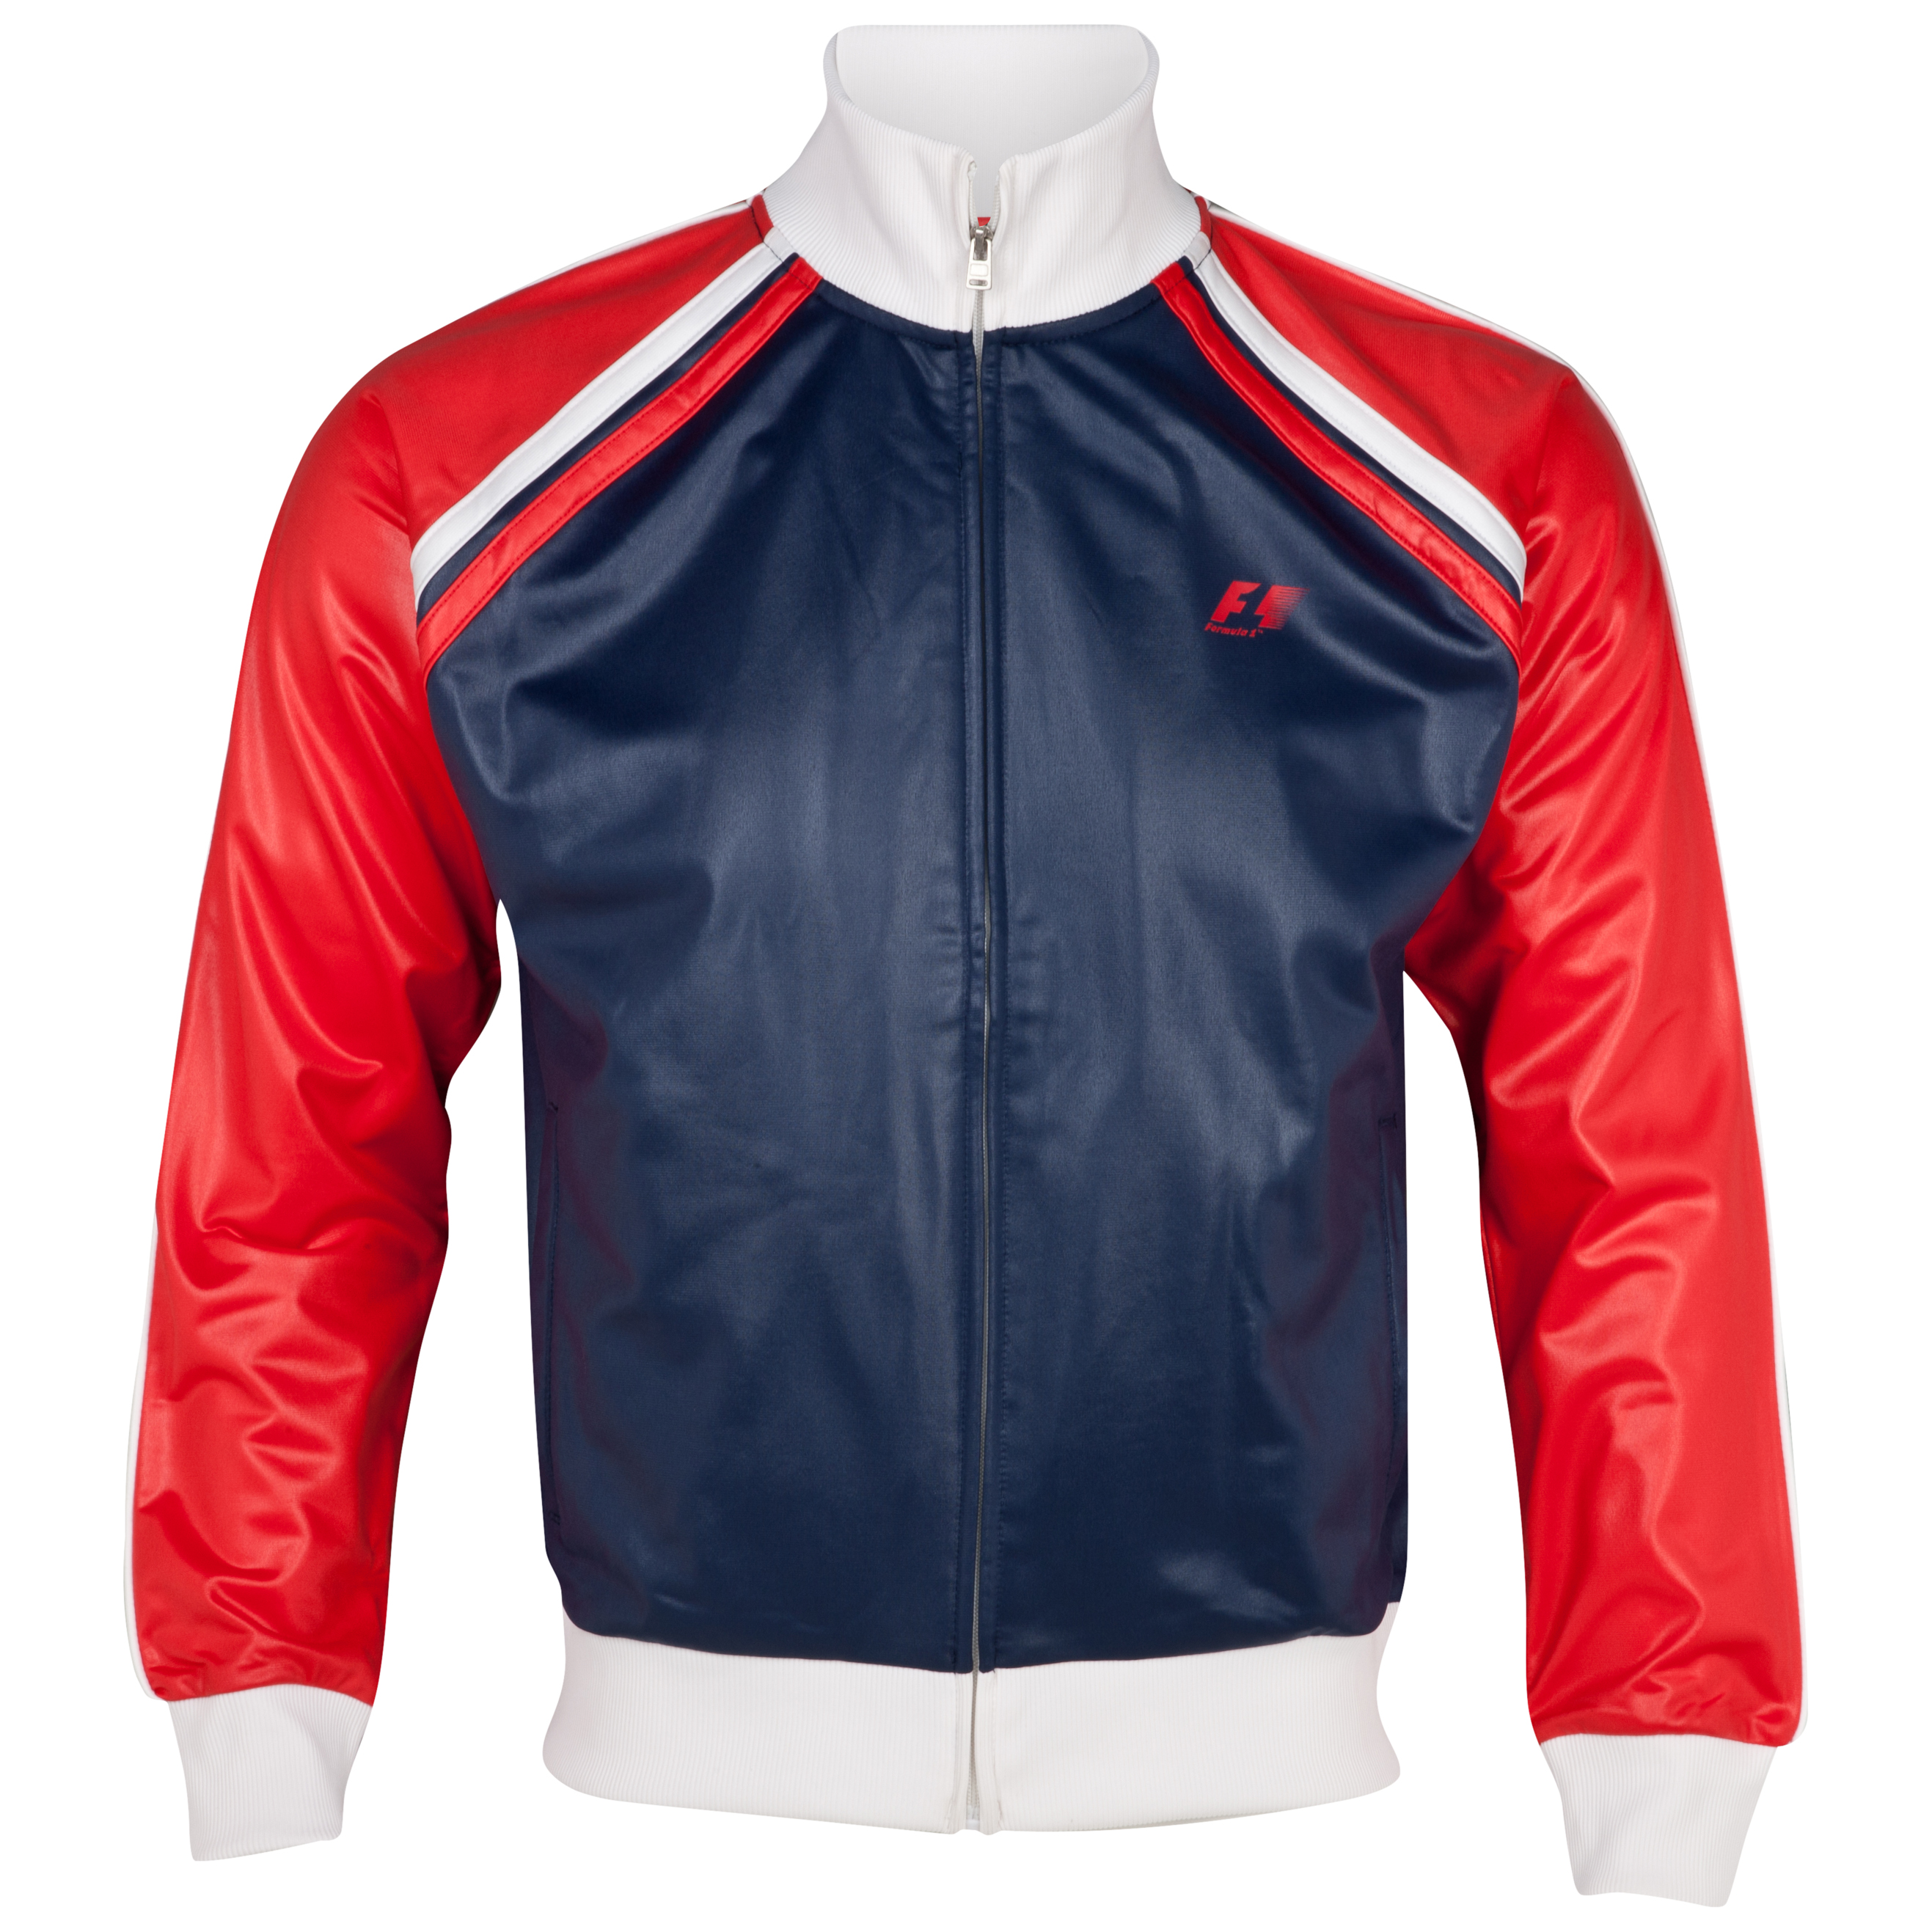 F1 Retro Track Top